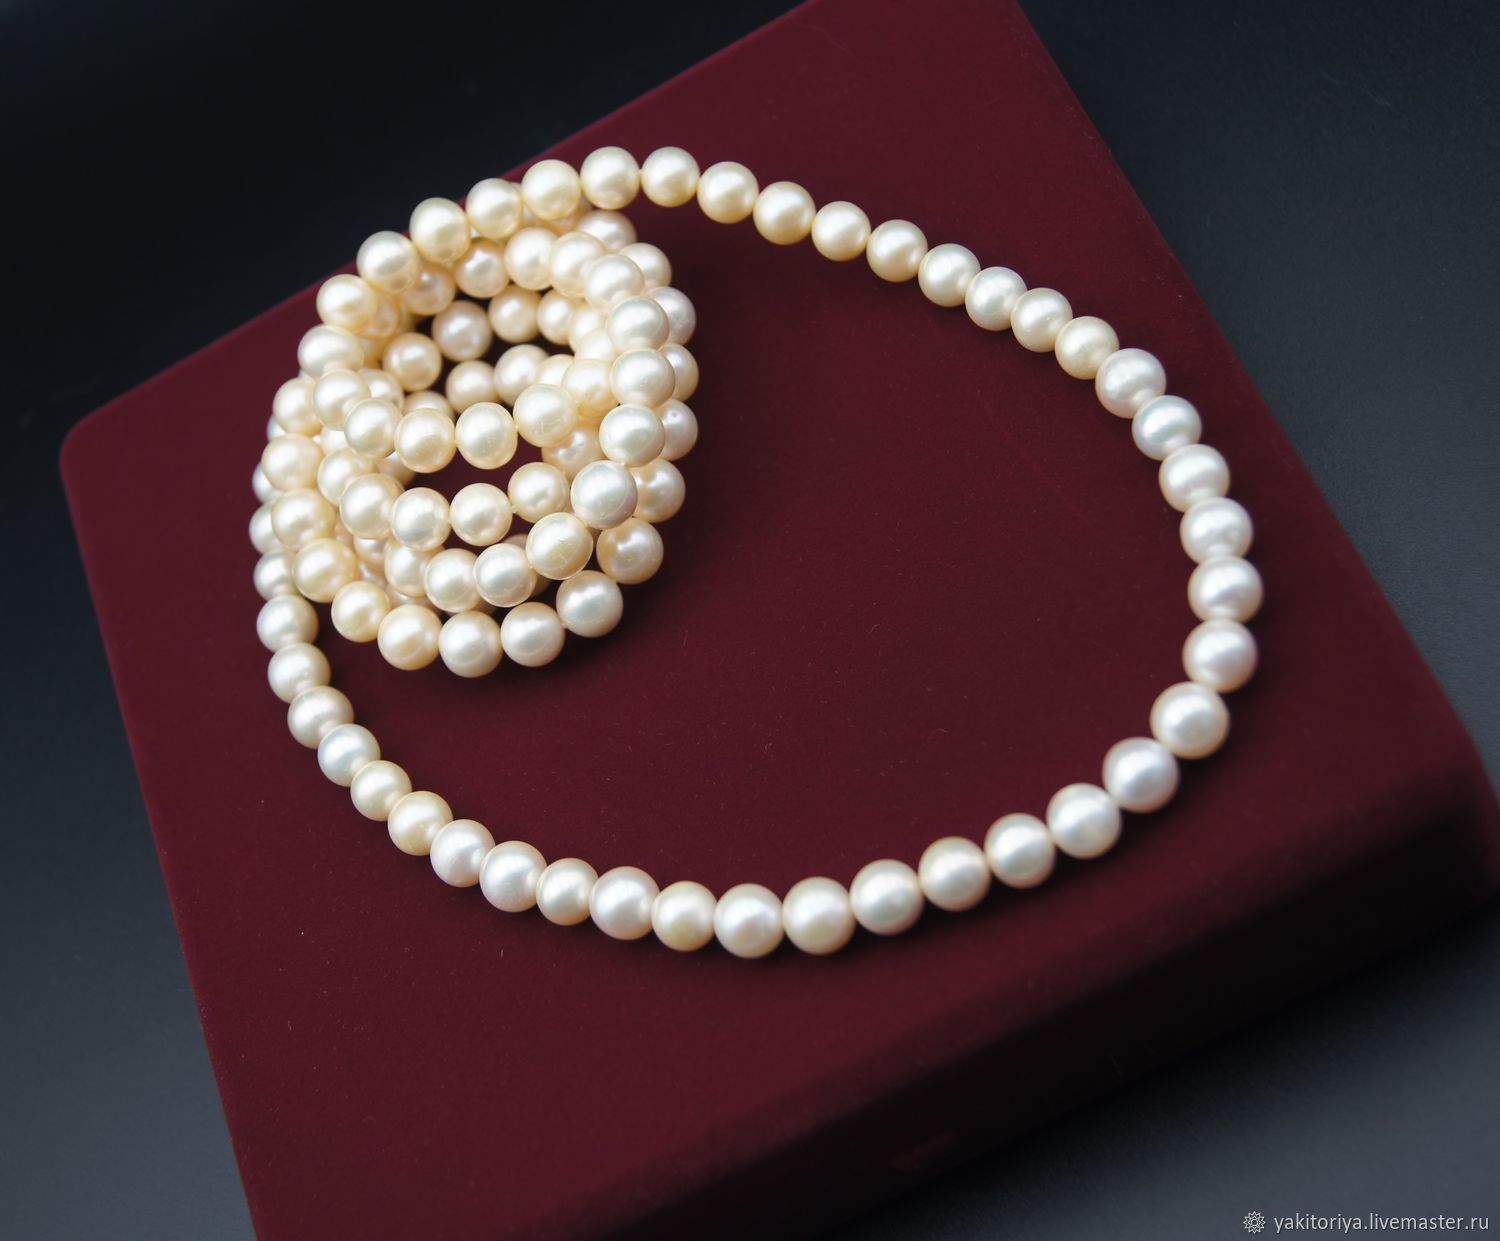 AAA grade natural pearl beads, Necklace, Moscow,  Фото №1